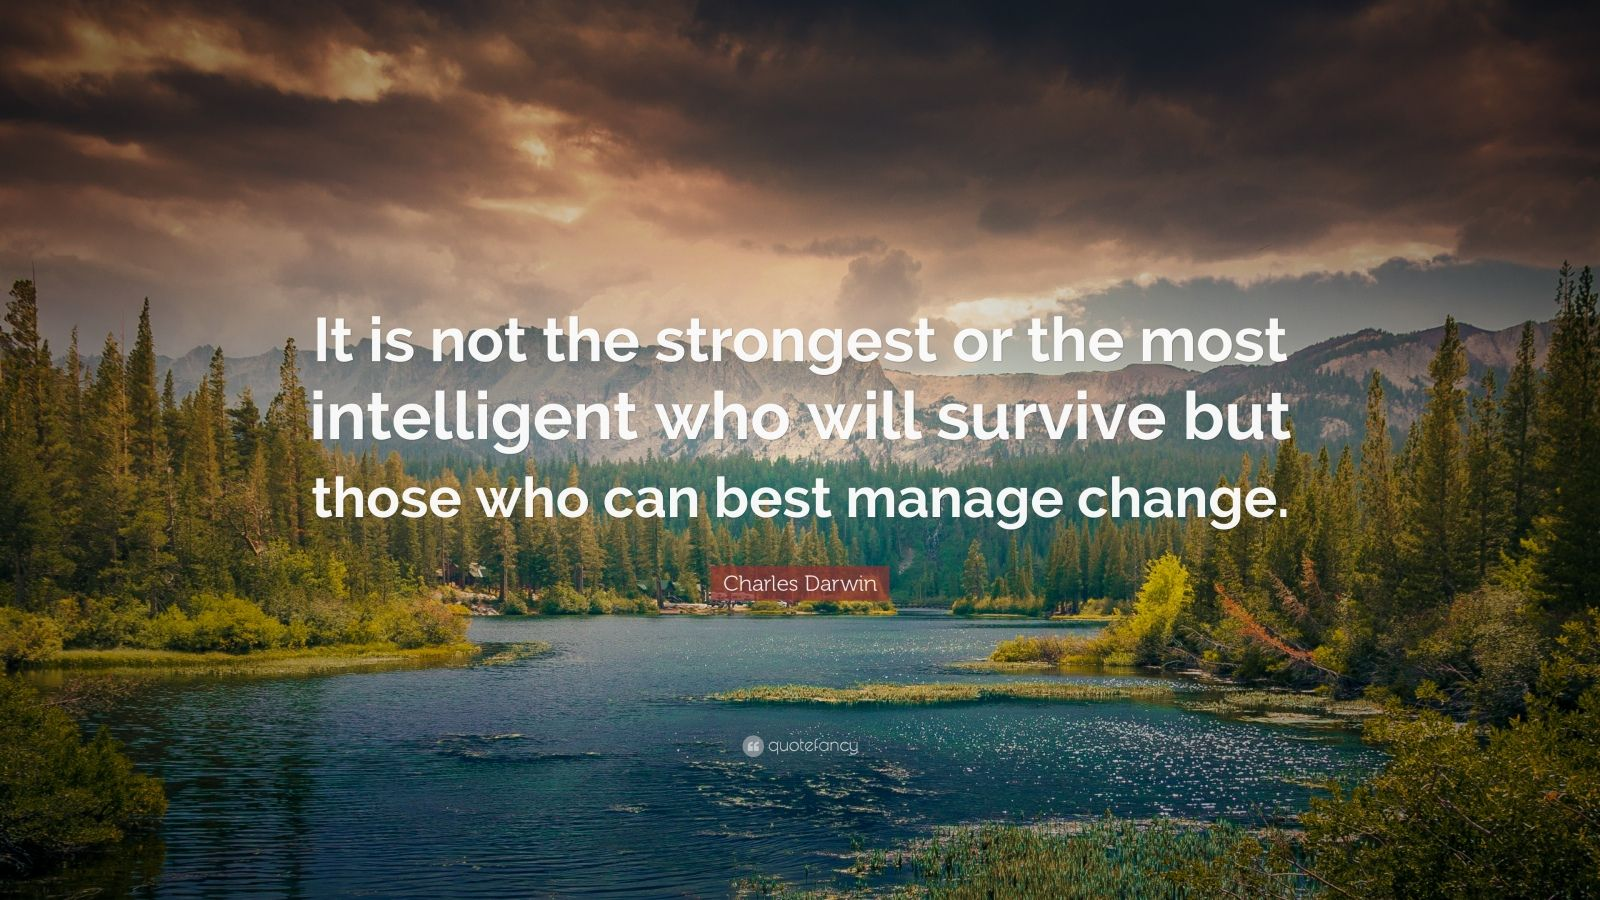 Obama Wallpaper Quote Charles Darwin Quote It Is Not The Strongest Or The Most